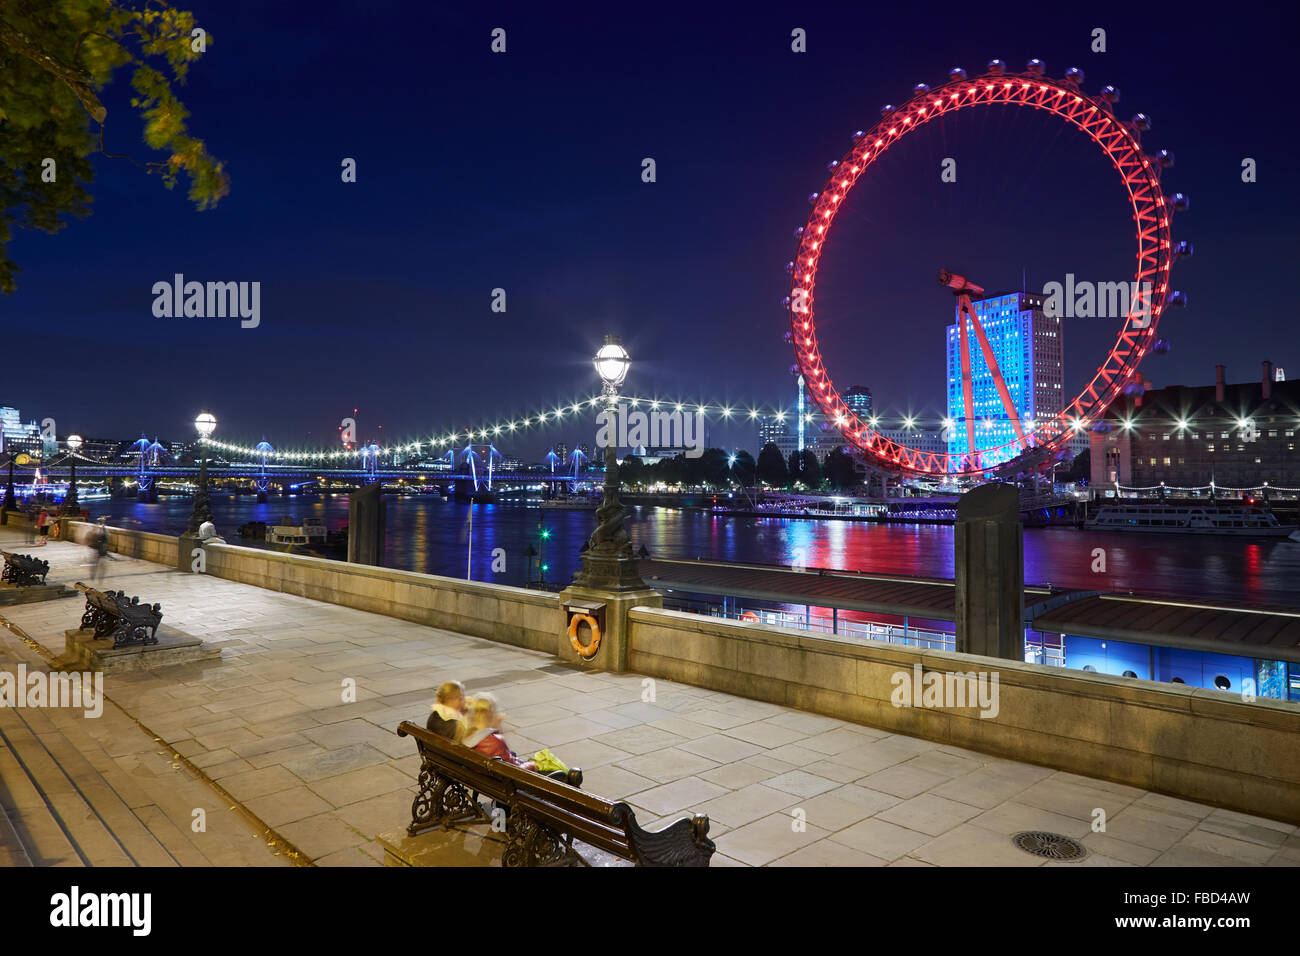 London eye, ferris wheel, illuminated in red in the night and Thames river docks view - Stock Image